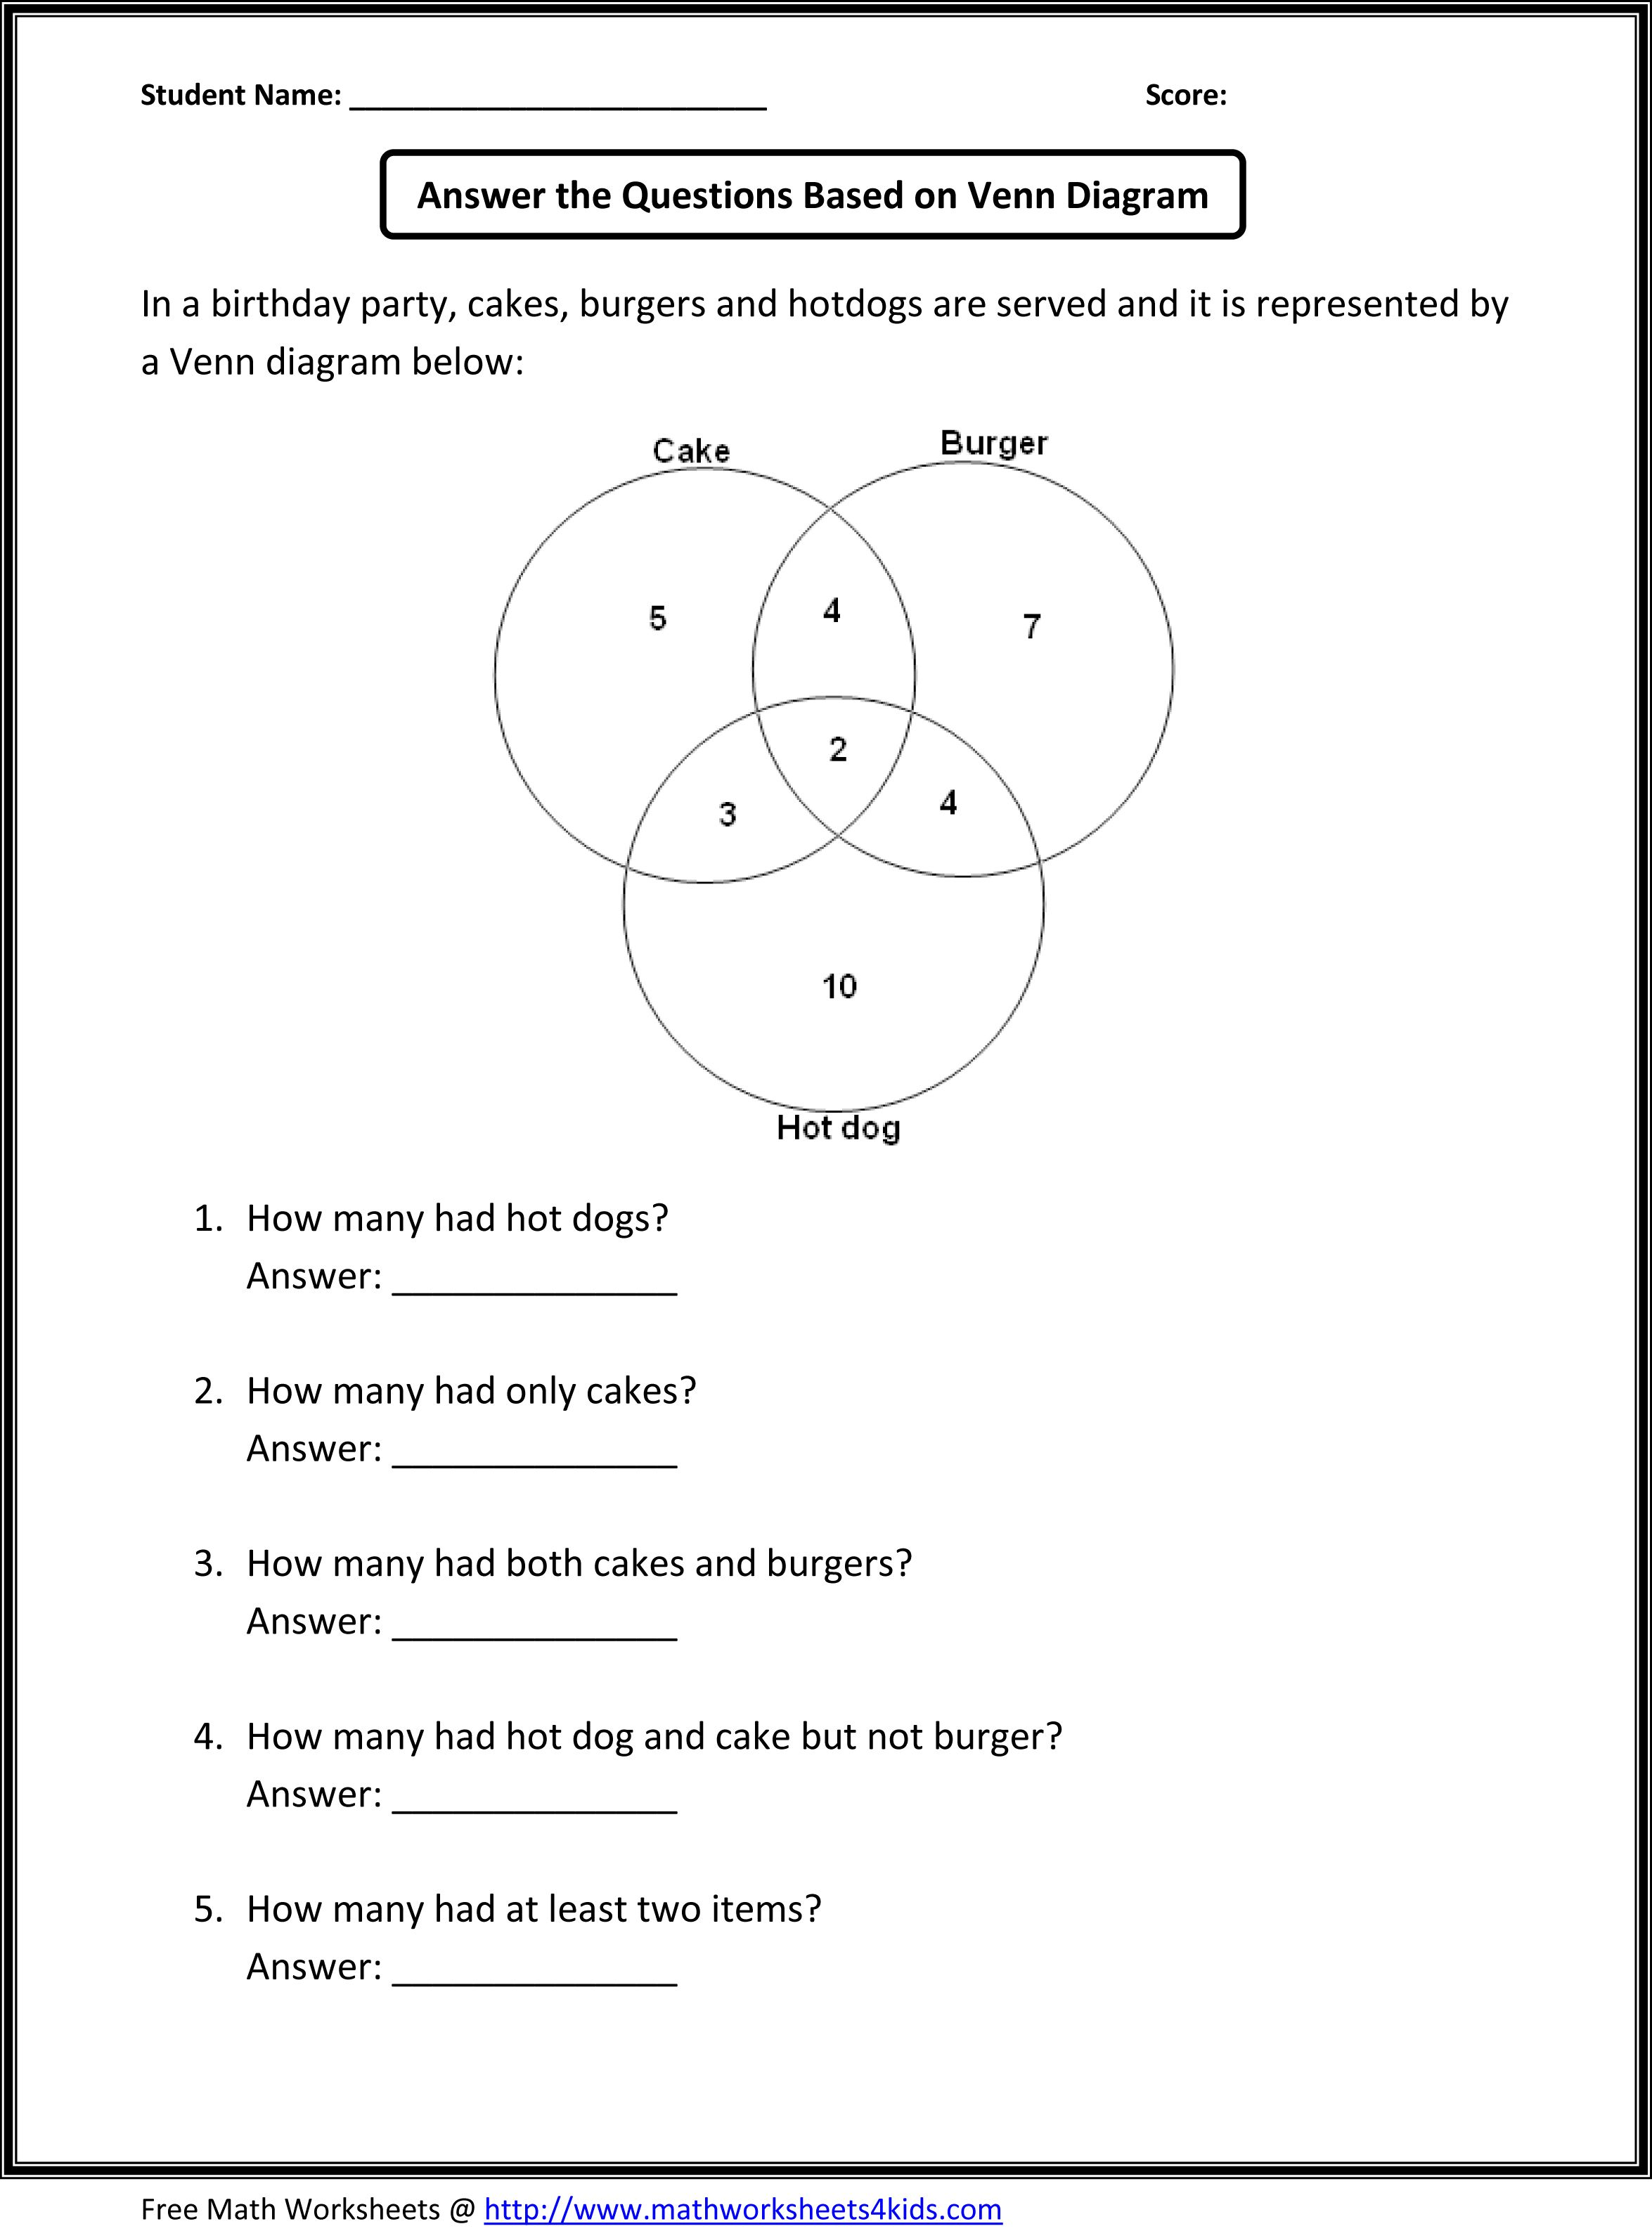 5th Grade Math Worksheets